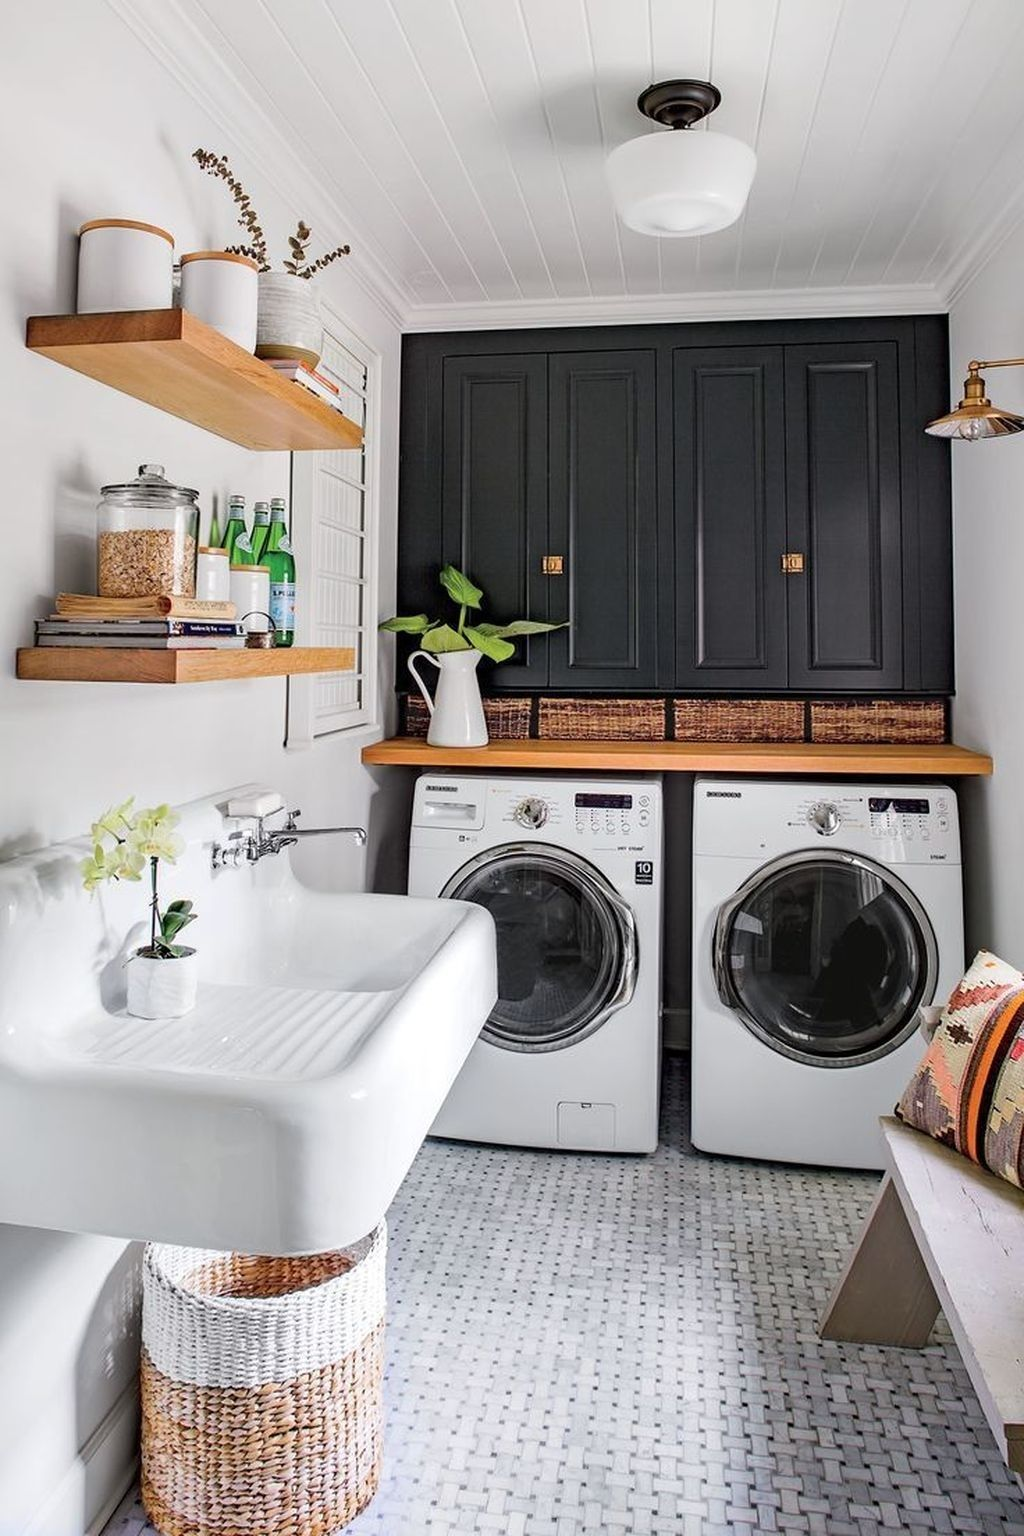 How To Maximize The Space In Your Laundry Room